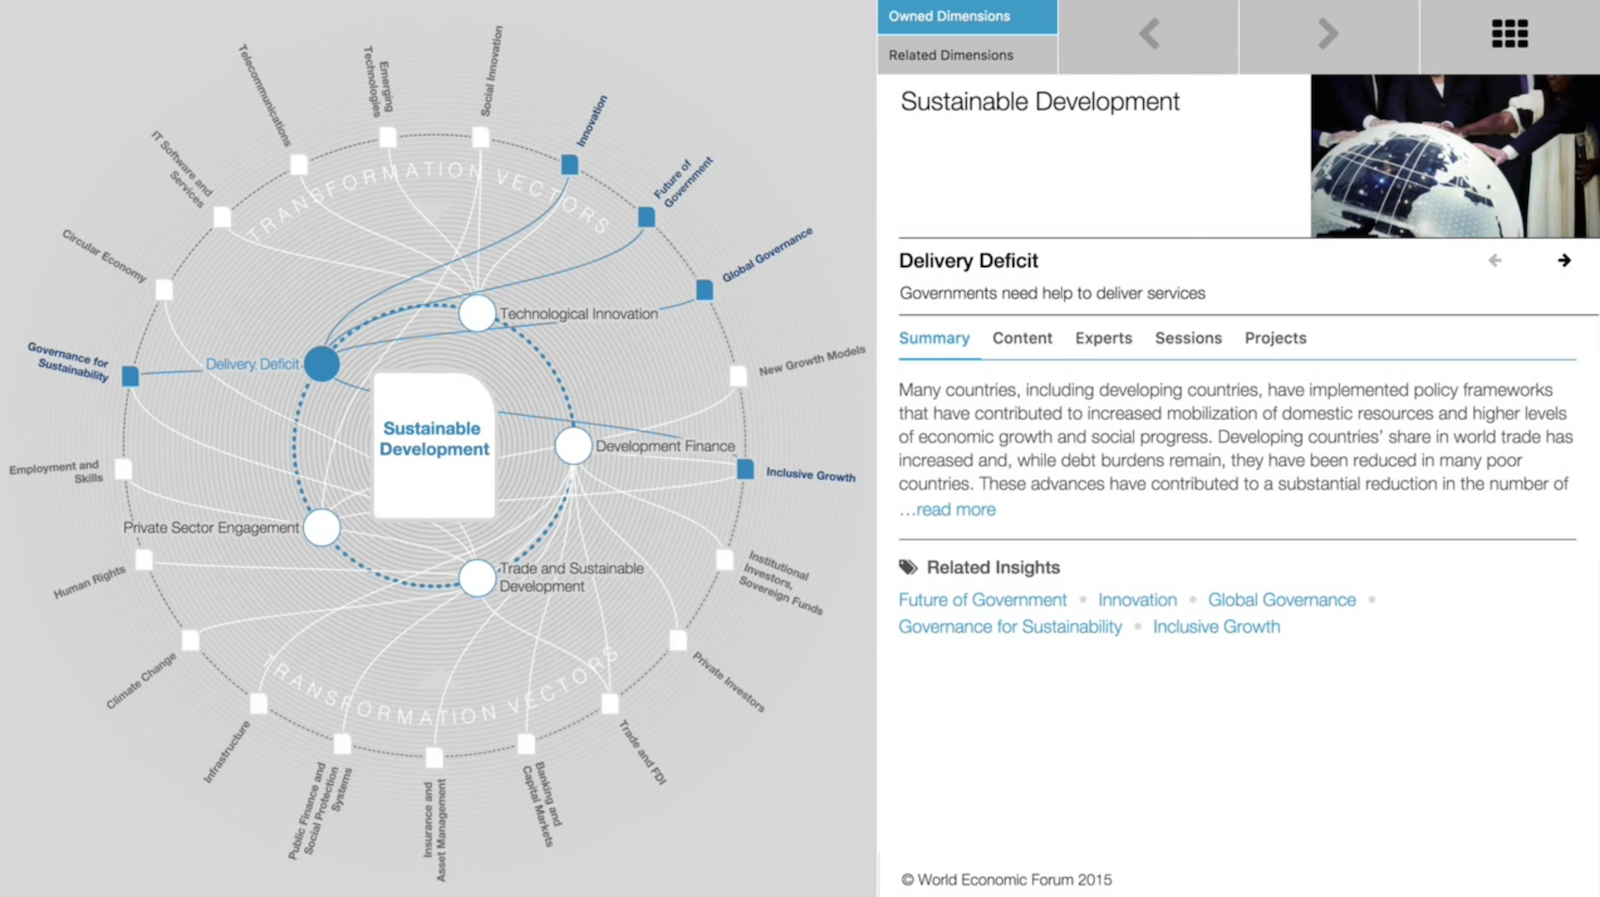 Watch Scott David Present on How the World Economic Forum Uses Neo4j for a Global Issues Graph